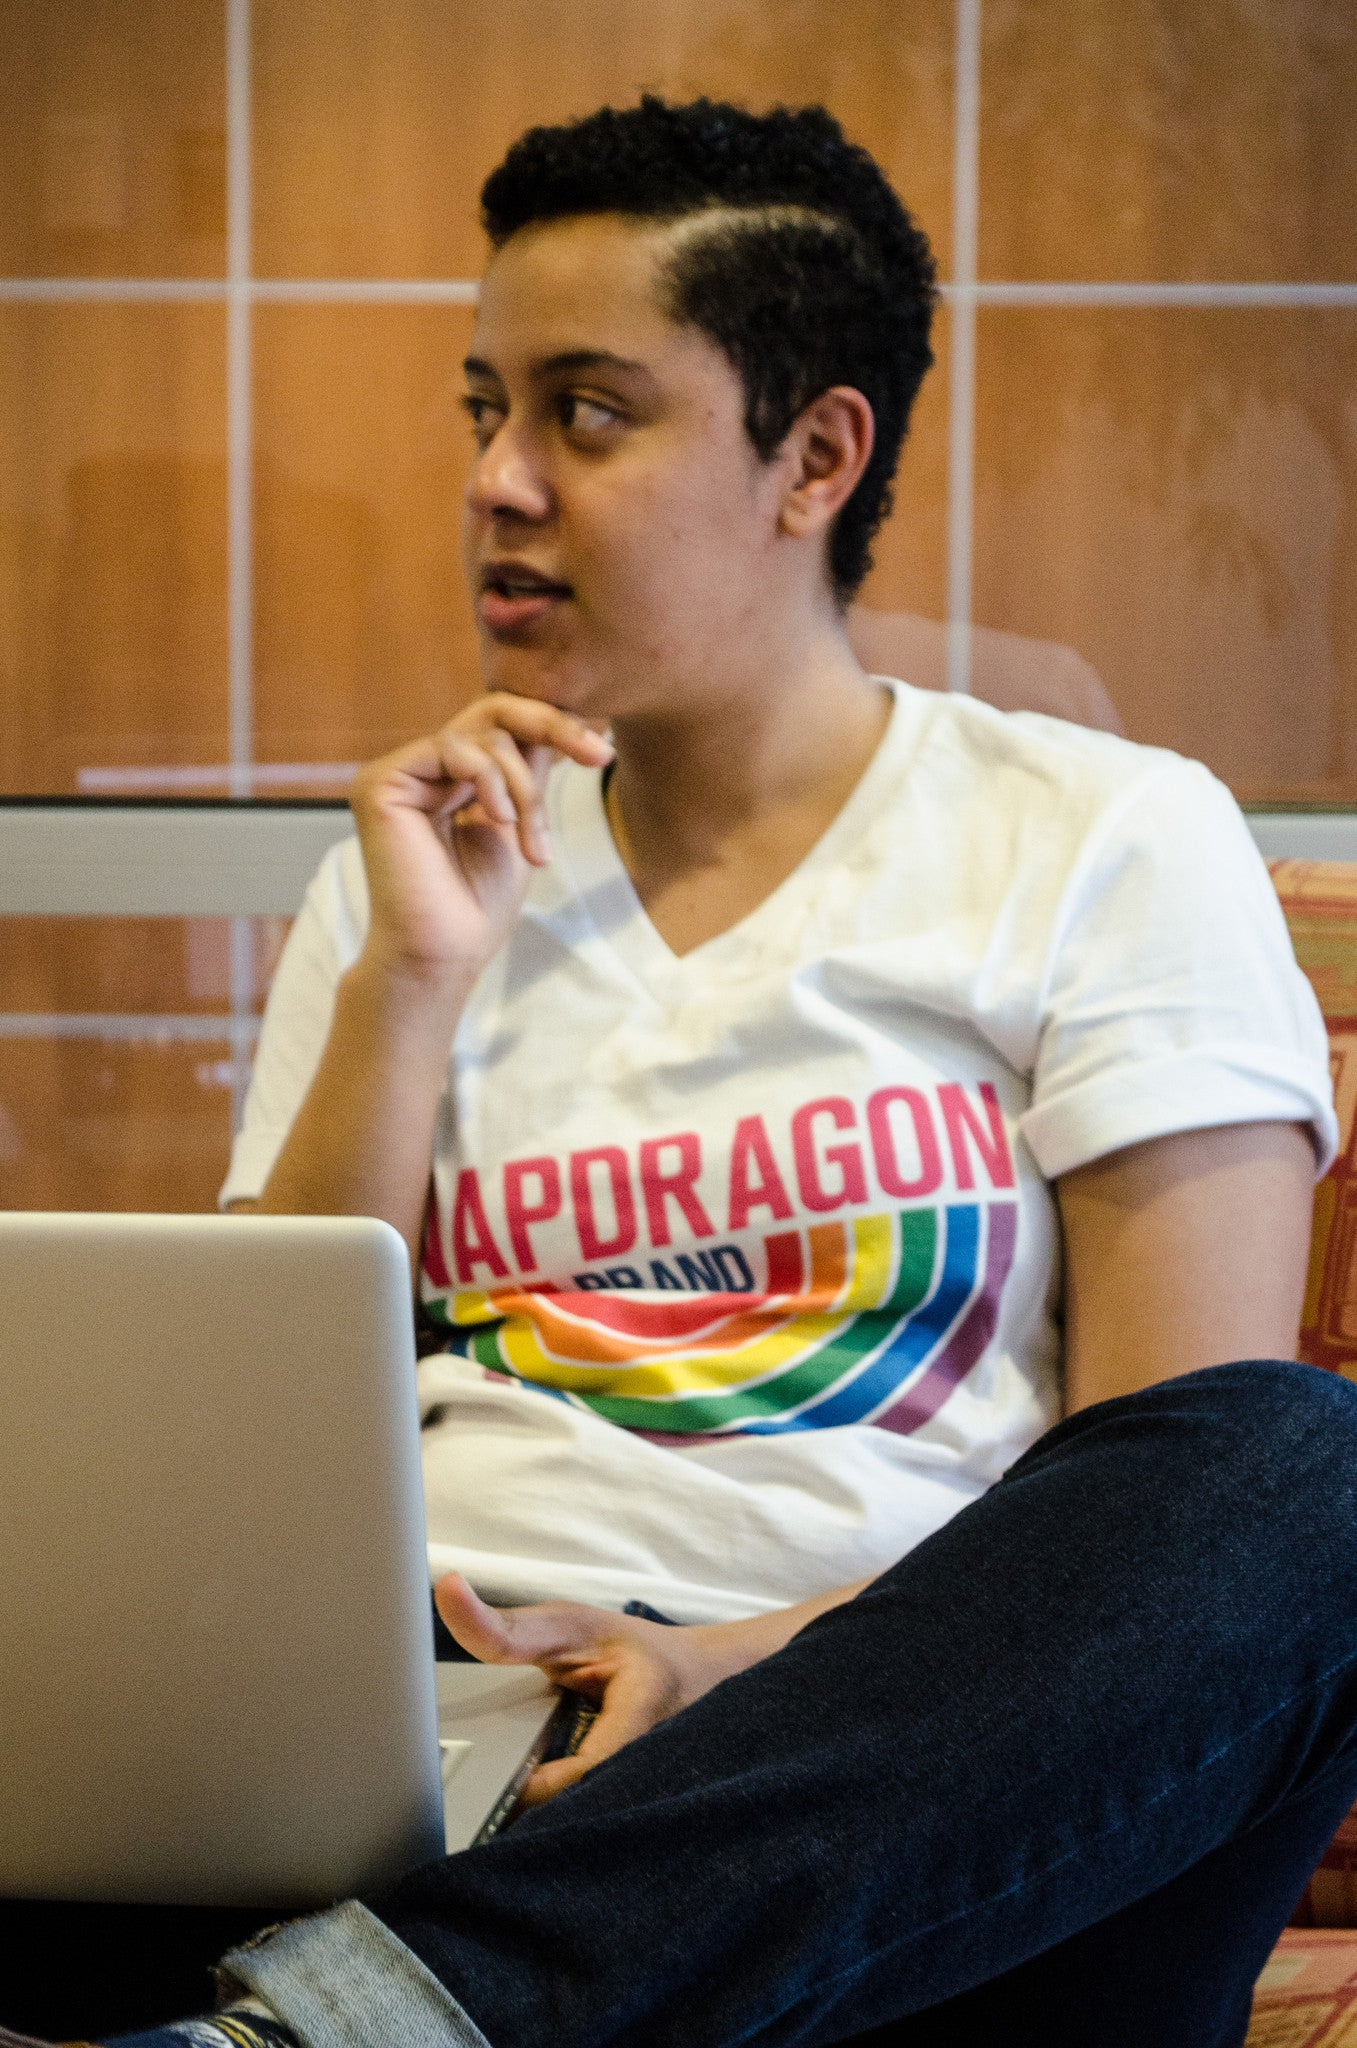 Snapdragon Brand Clothing Granny Square Crochet Print unisex rainbow v-neck tee t-shirt in style logo features a vintage psychedelic boho feel and a rainbow of colors. Made of comfortable cotton. lgbt lgbtq lgbtqi